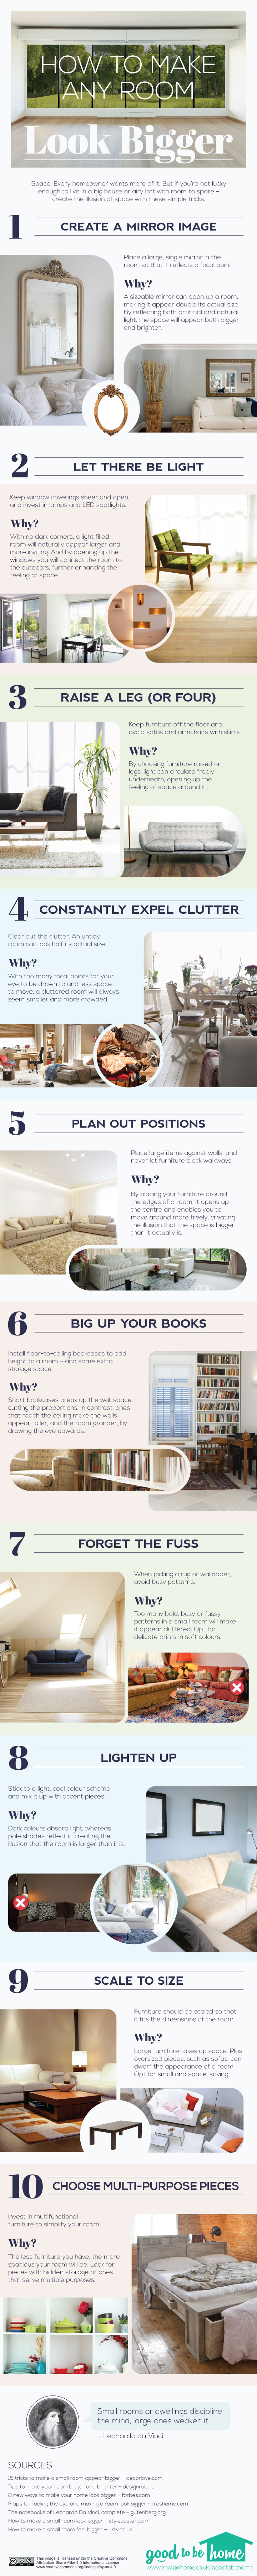 How to make any room look bigger: an infographic guide.